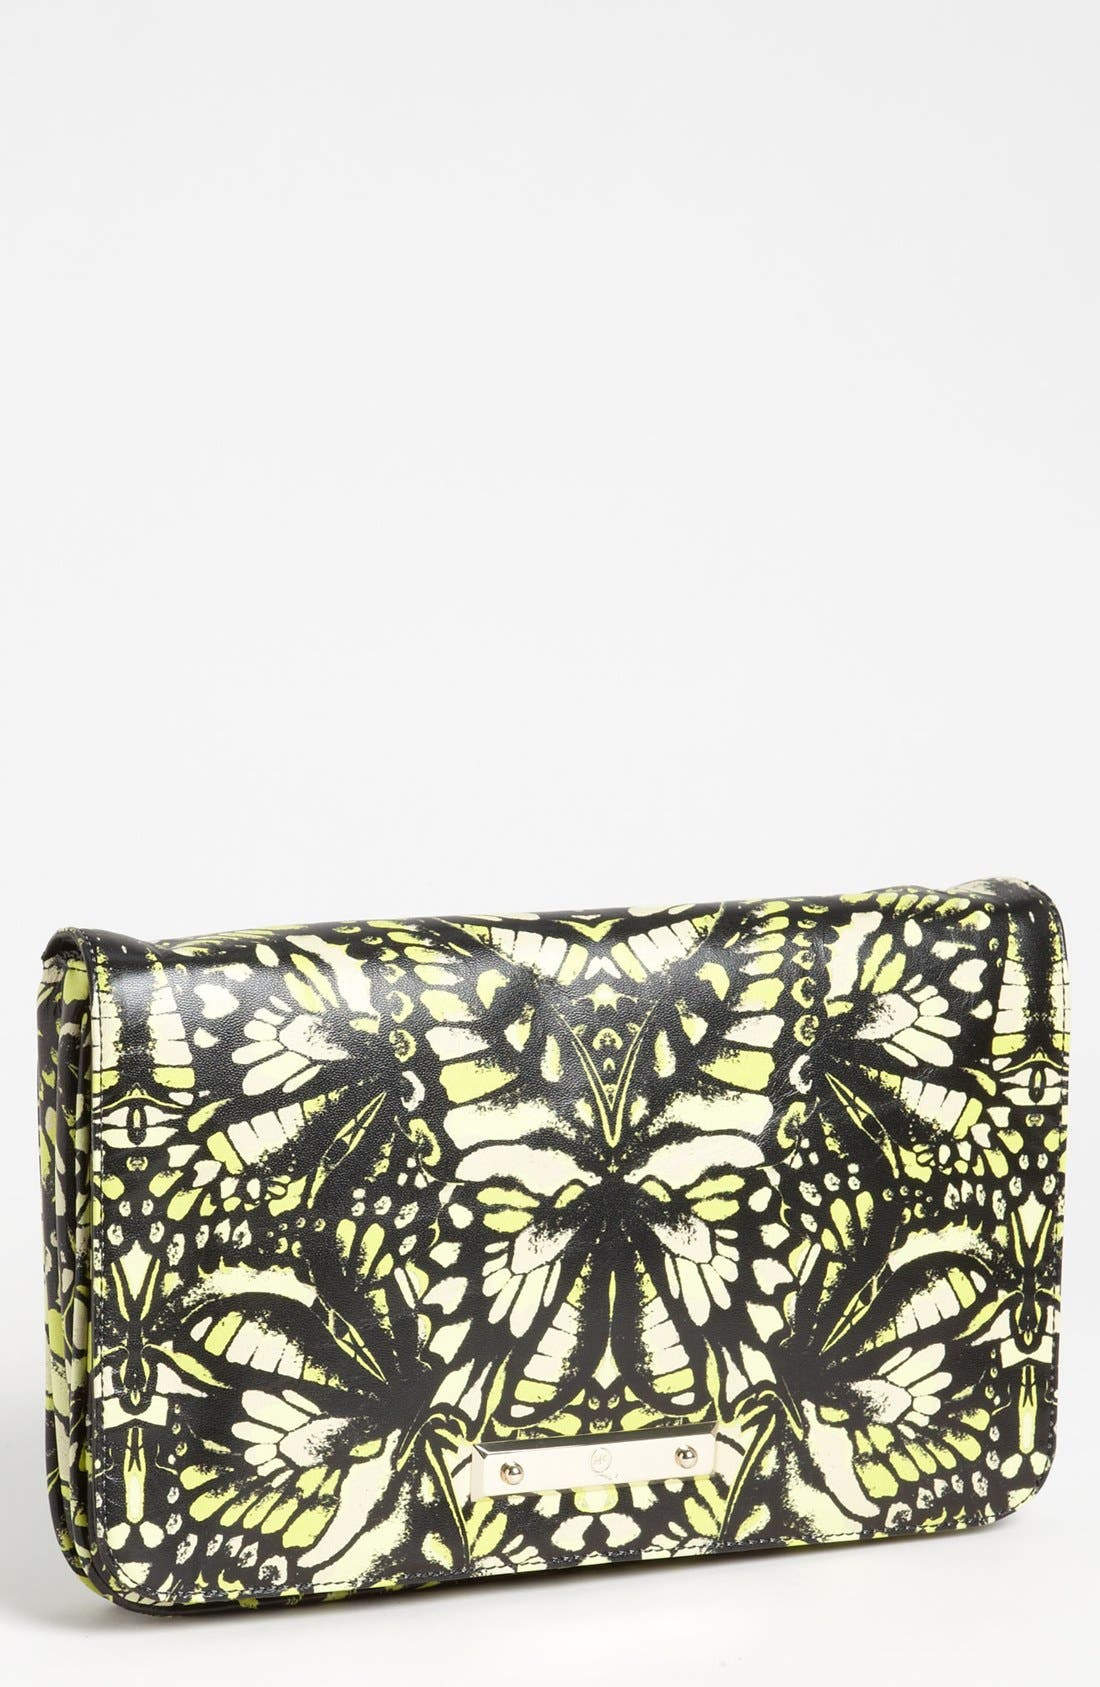 Alternate Image 1 Selected - McQ by Alexander McQueen 'Metal Plate' Print Leather Clutch